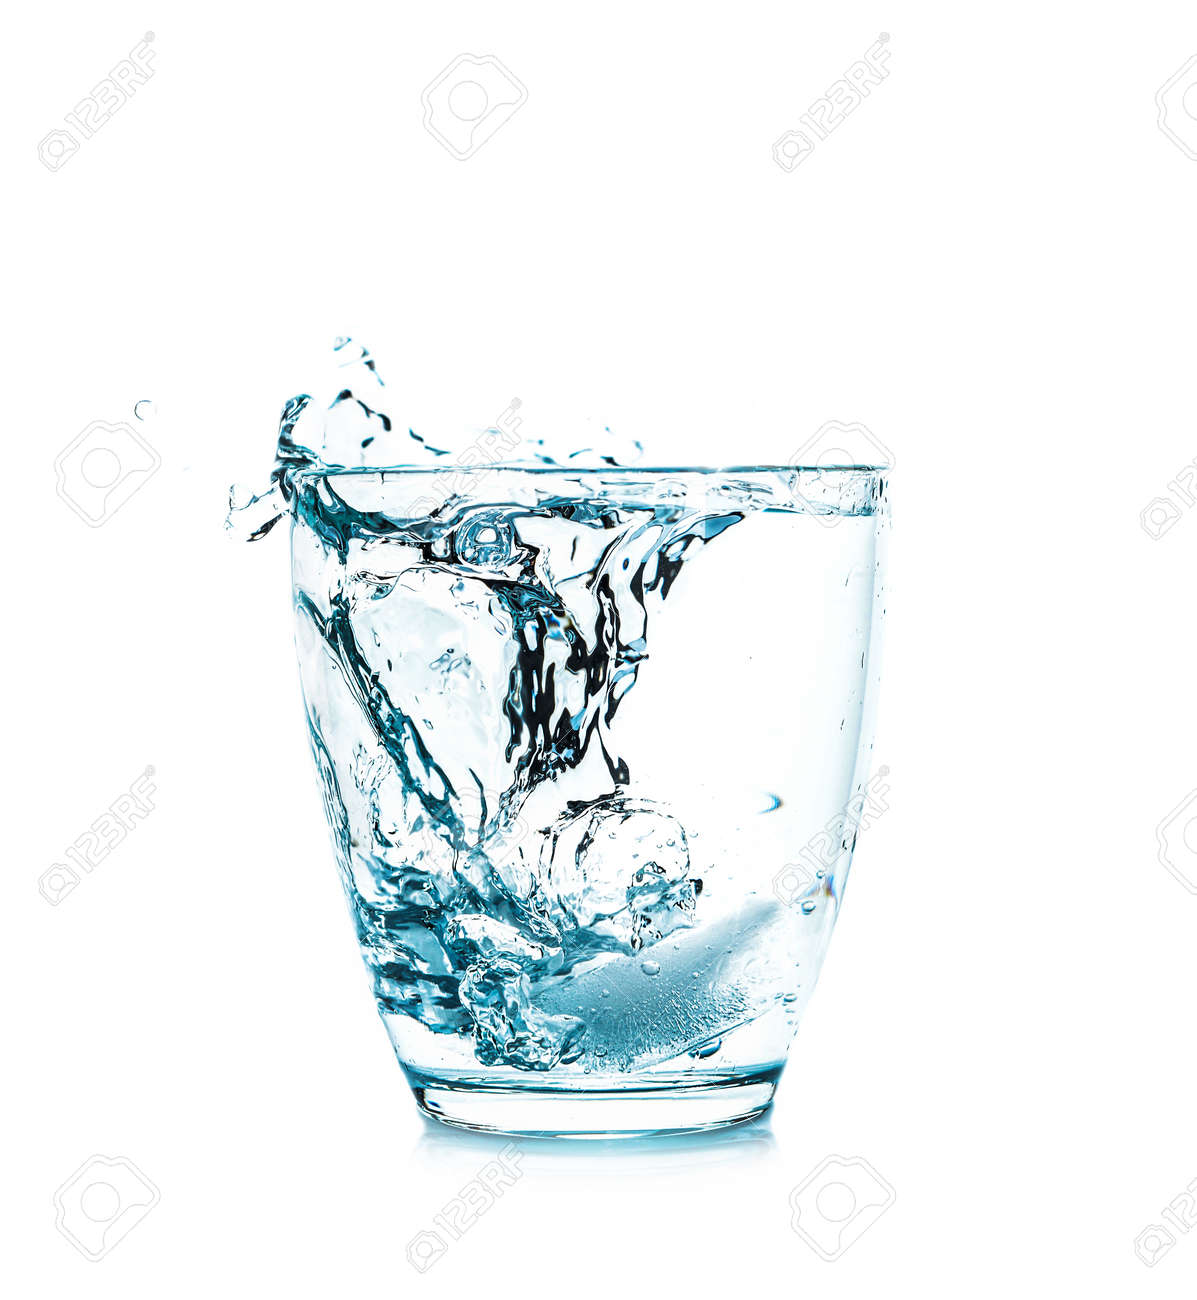 Glass of fresh water with splash on white background - 166059001